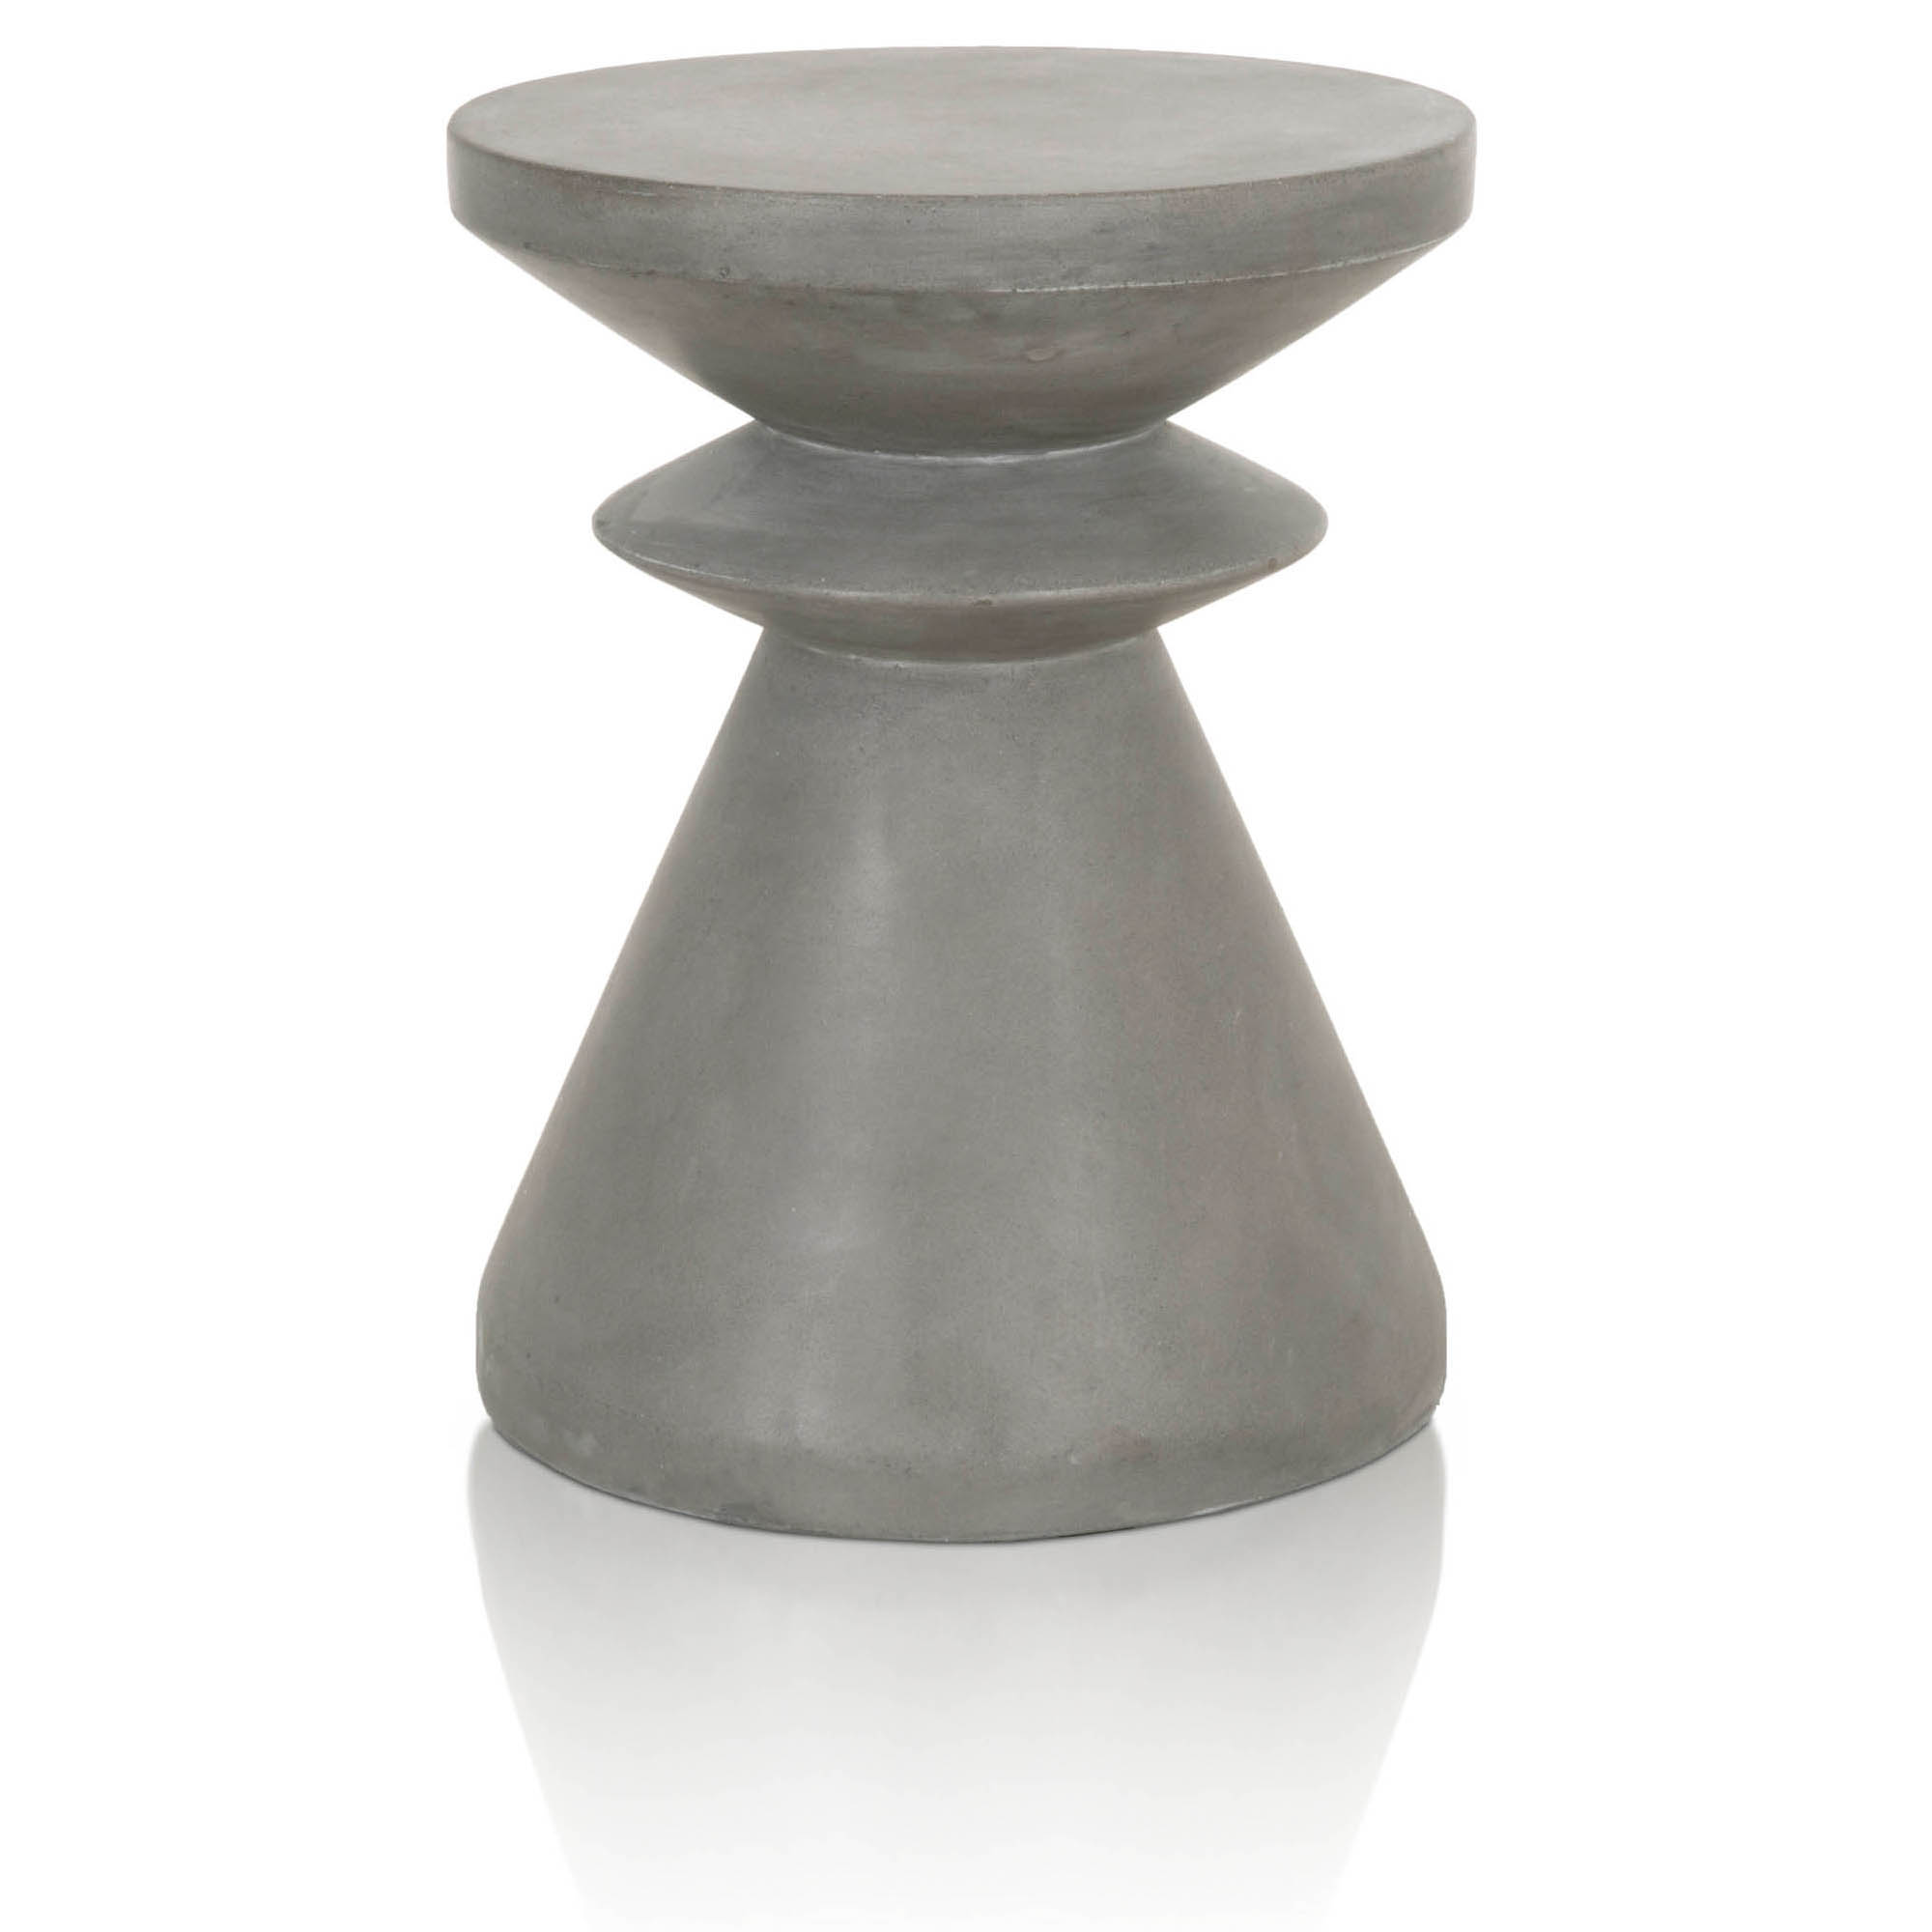 pawn accent table end slate grey concrete outdoor colorful coffee tables pier desk gothic furniture target waldo mats terrace west elm kitchen hobby lobby patio umbrella lights